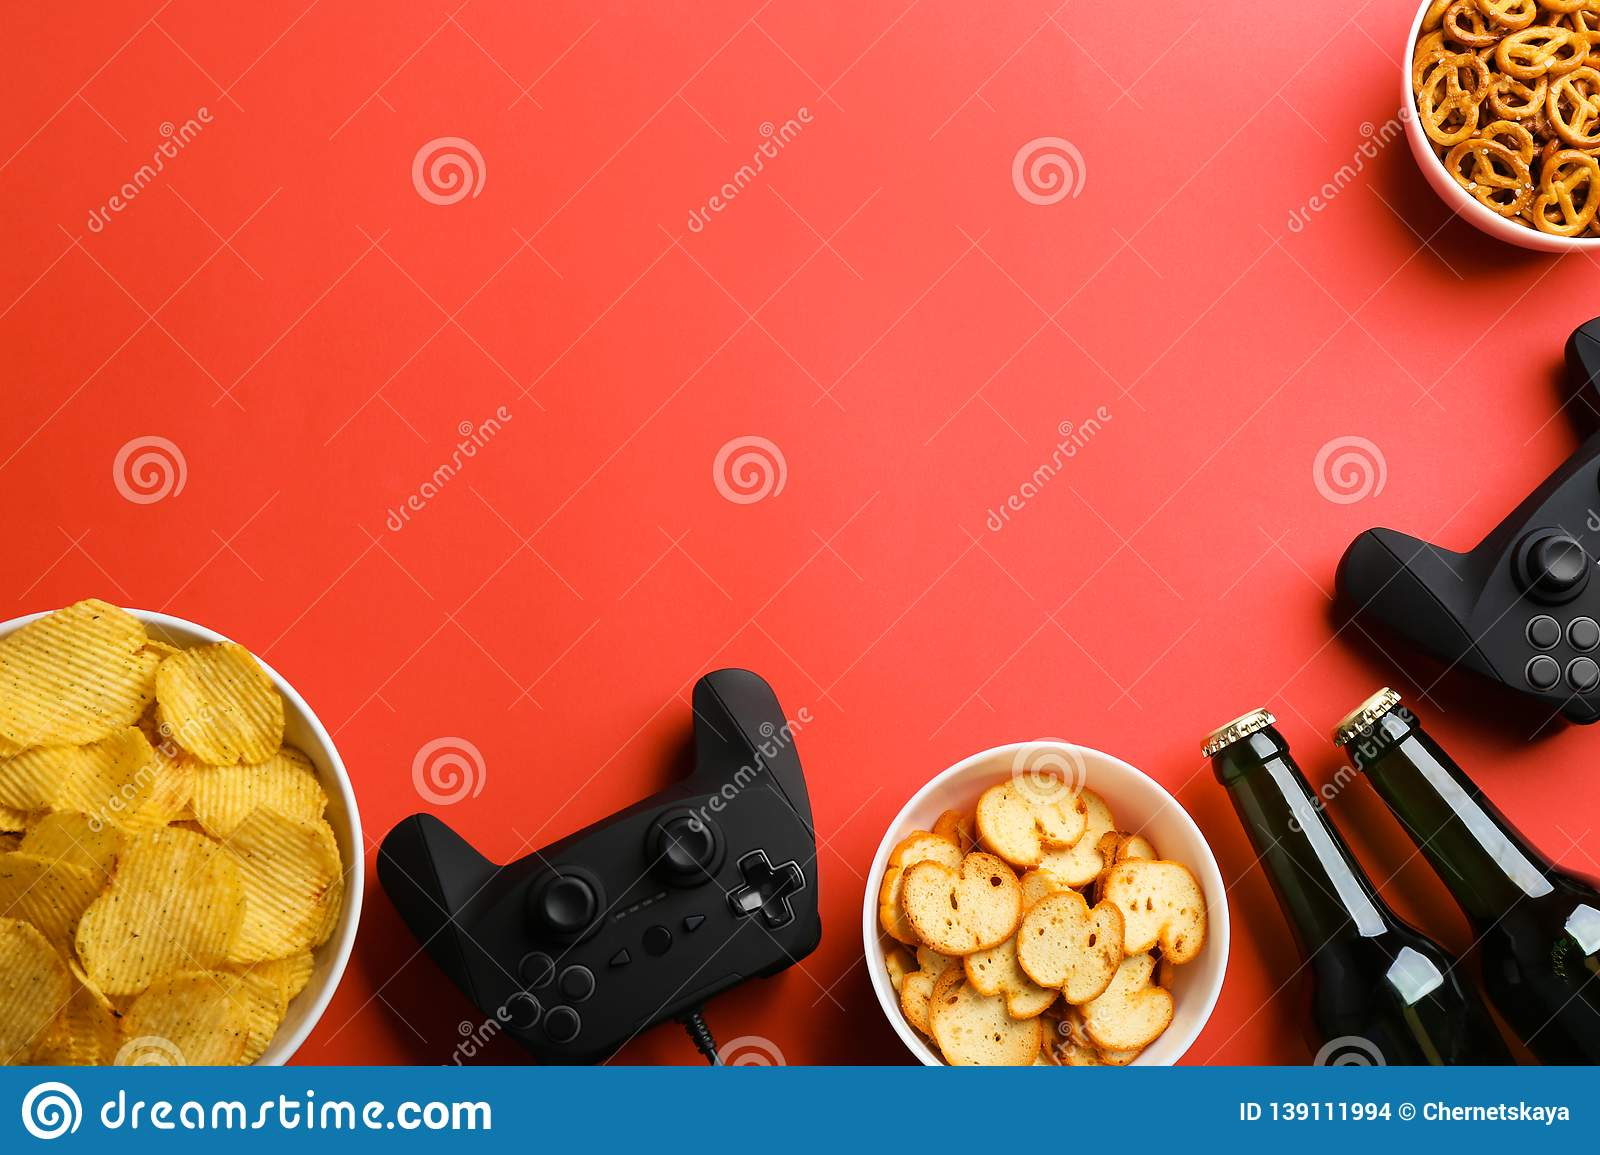 Flat lay composition with video game controllers, snacks and space for text